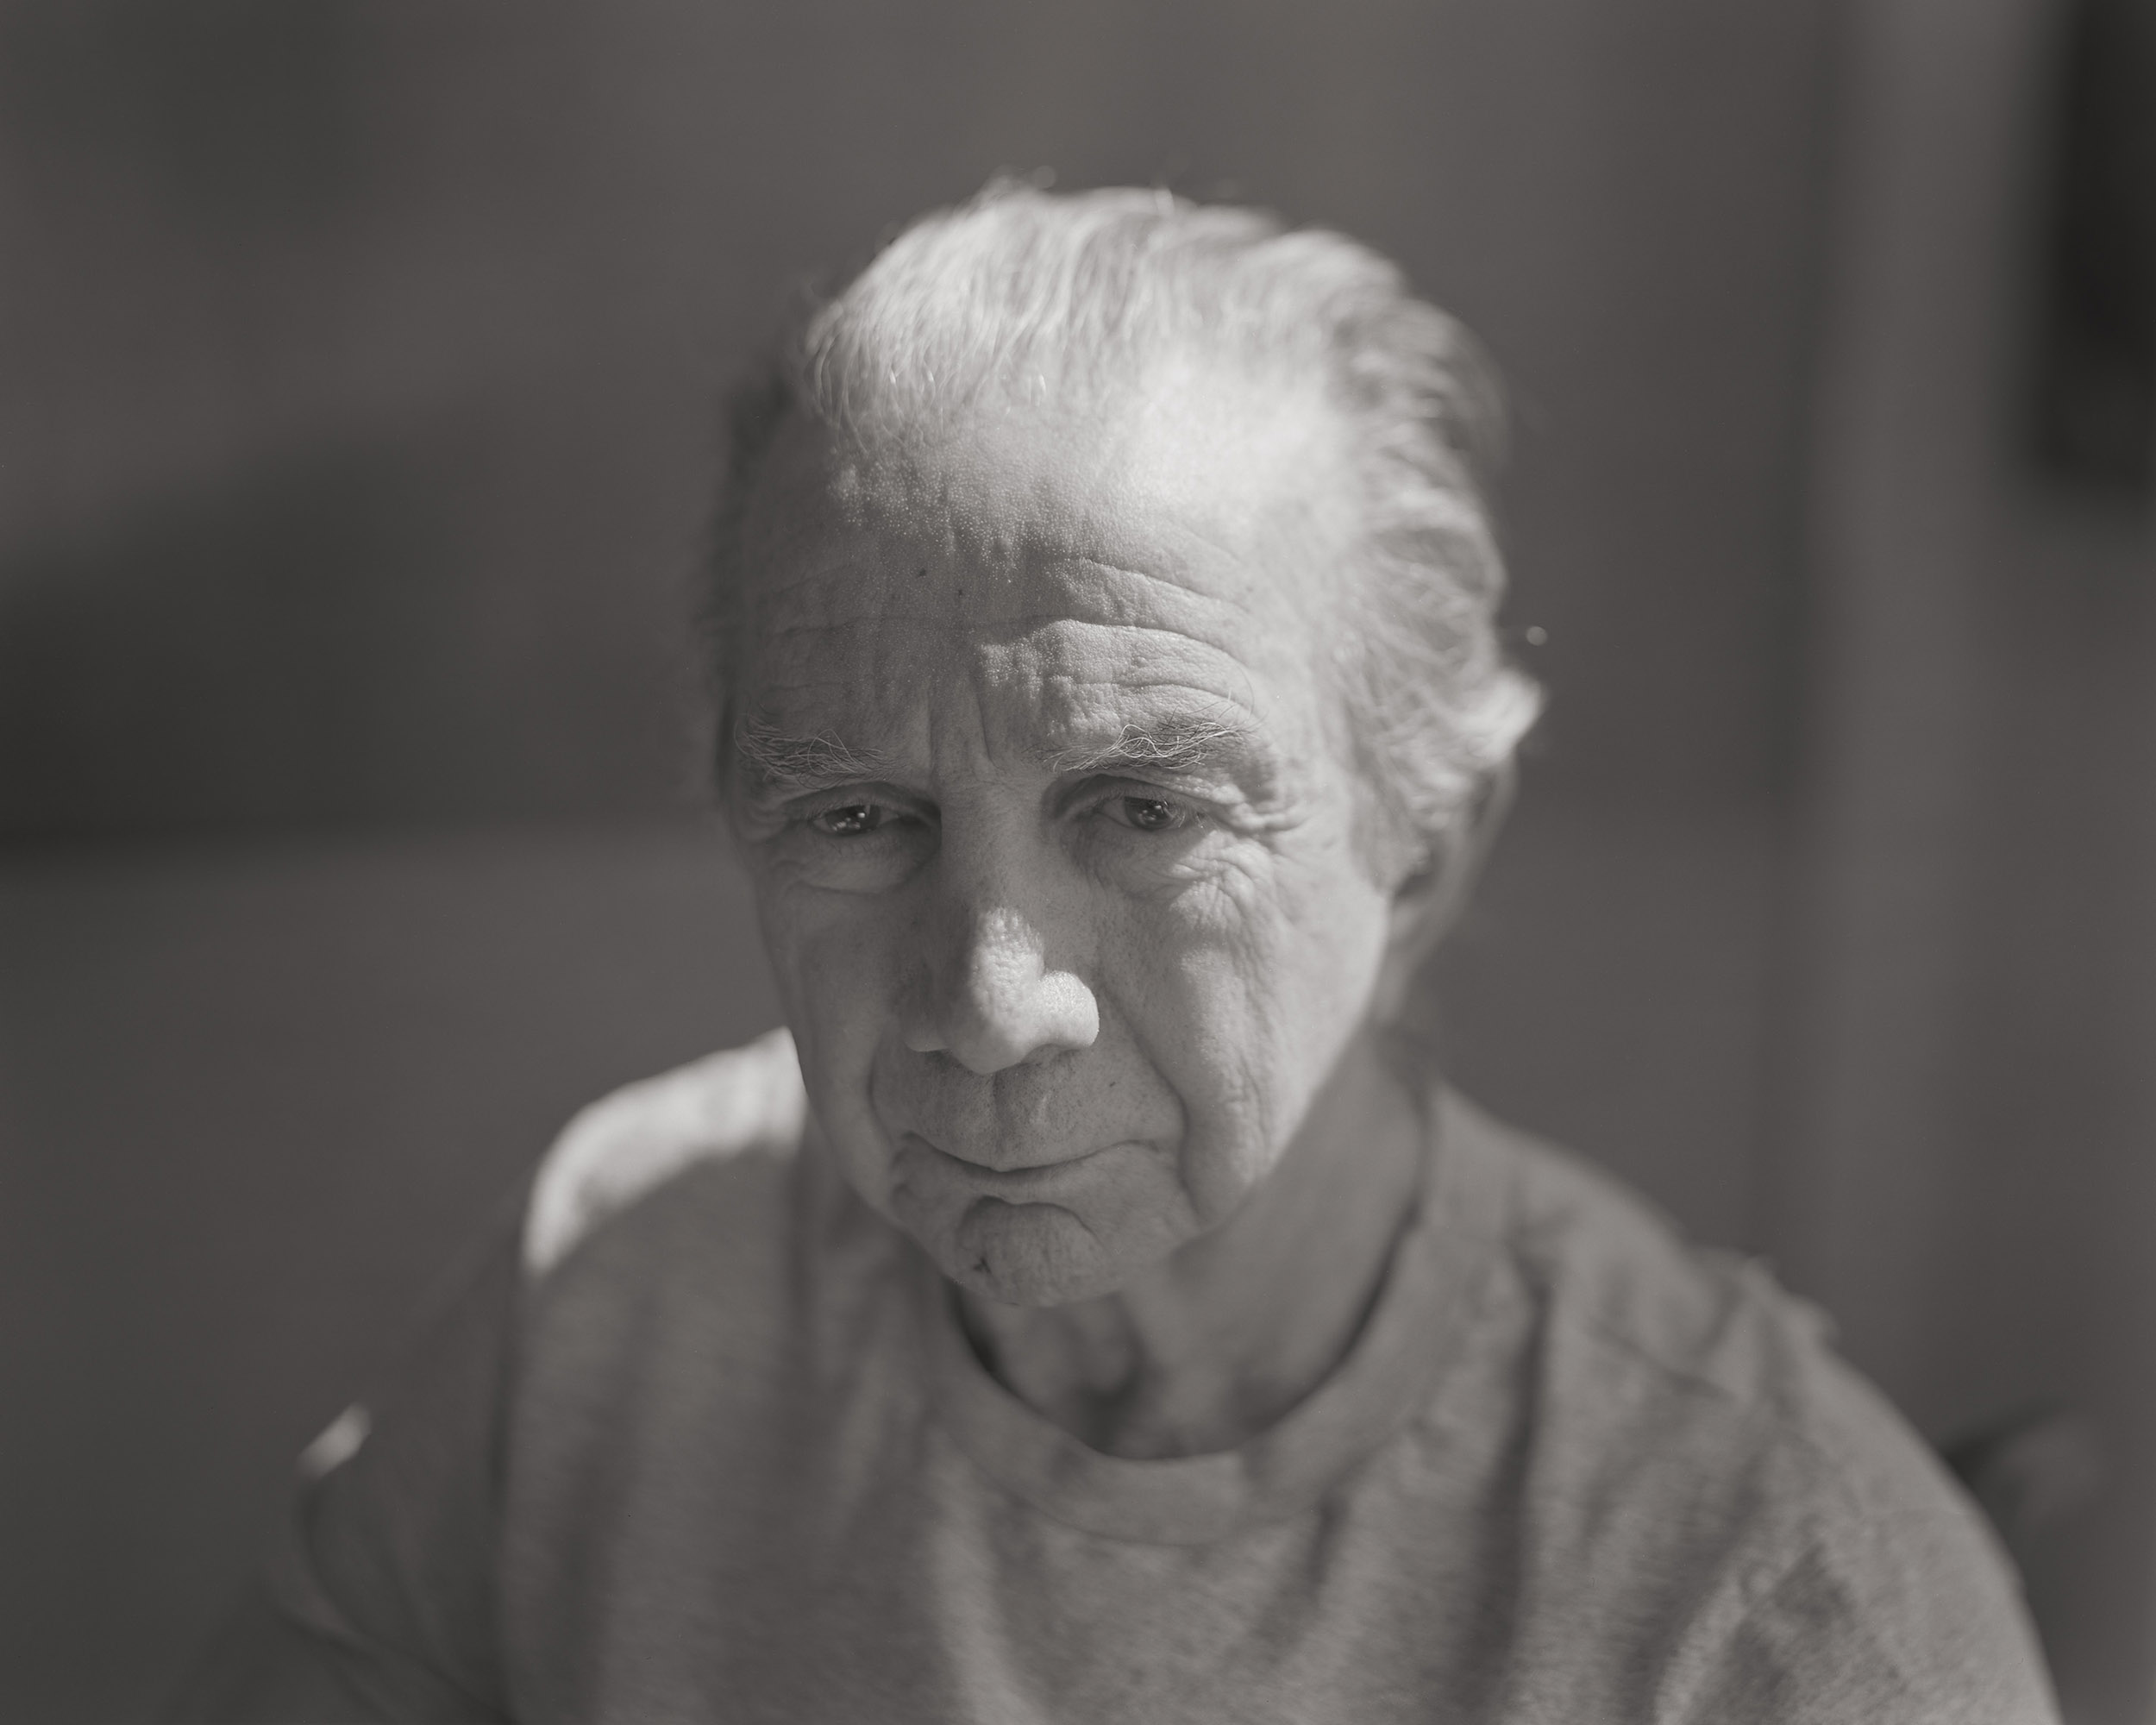 Gene, Nursing Home - 2005, © Stephen DiRado